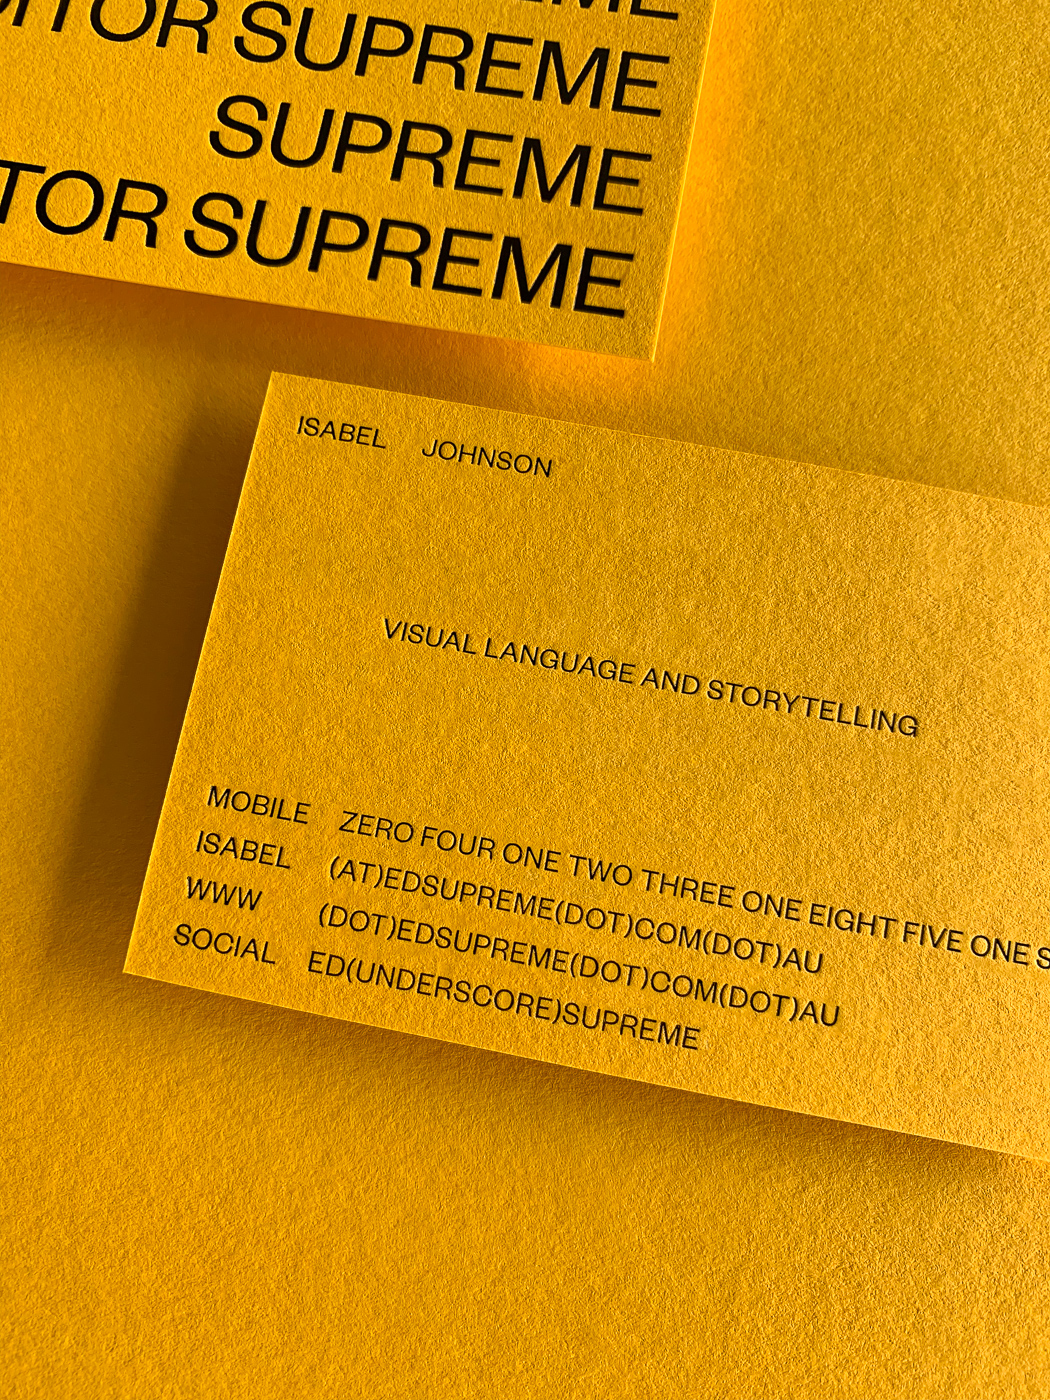 Black foil business cards for Ed Supreme on Colorplan 6